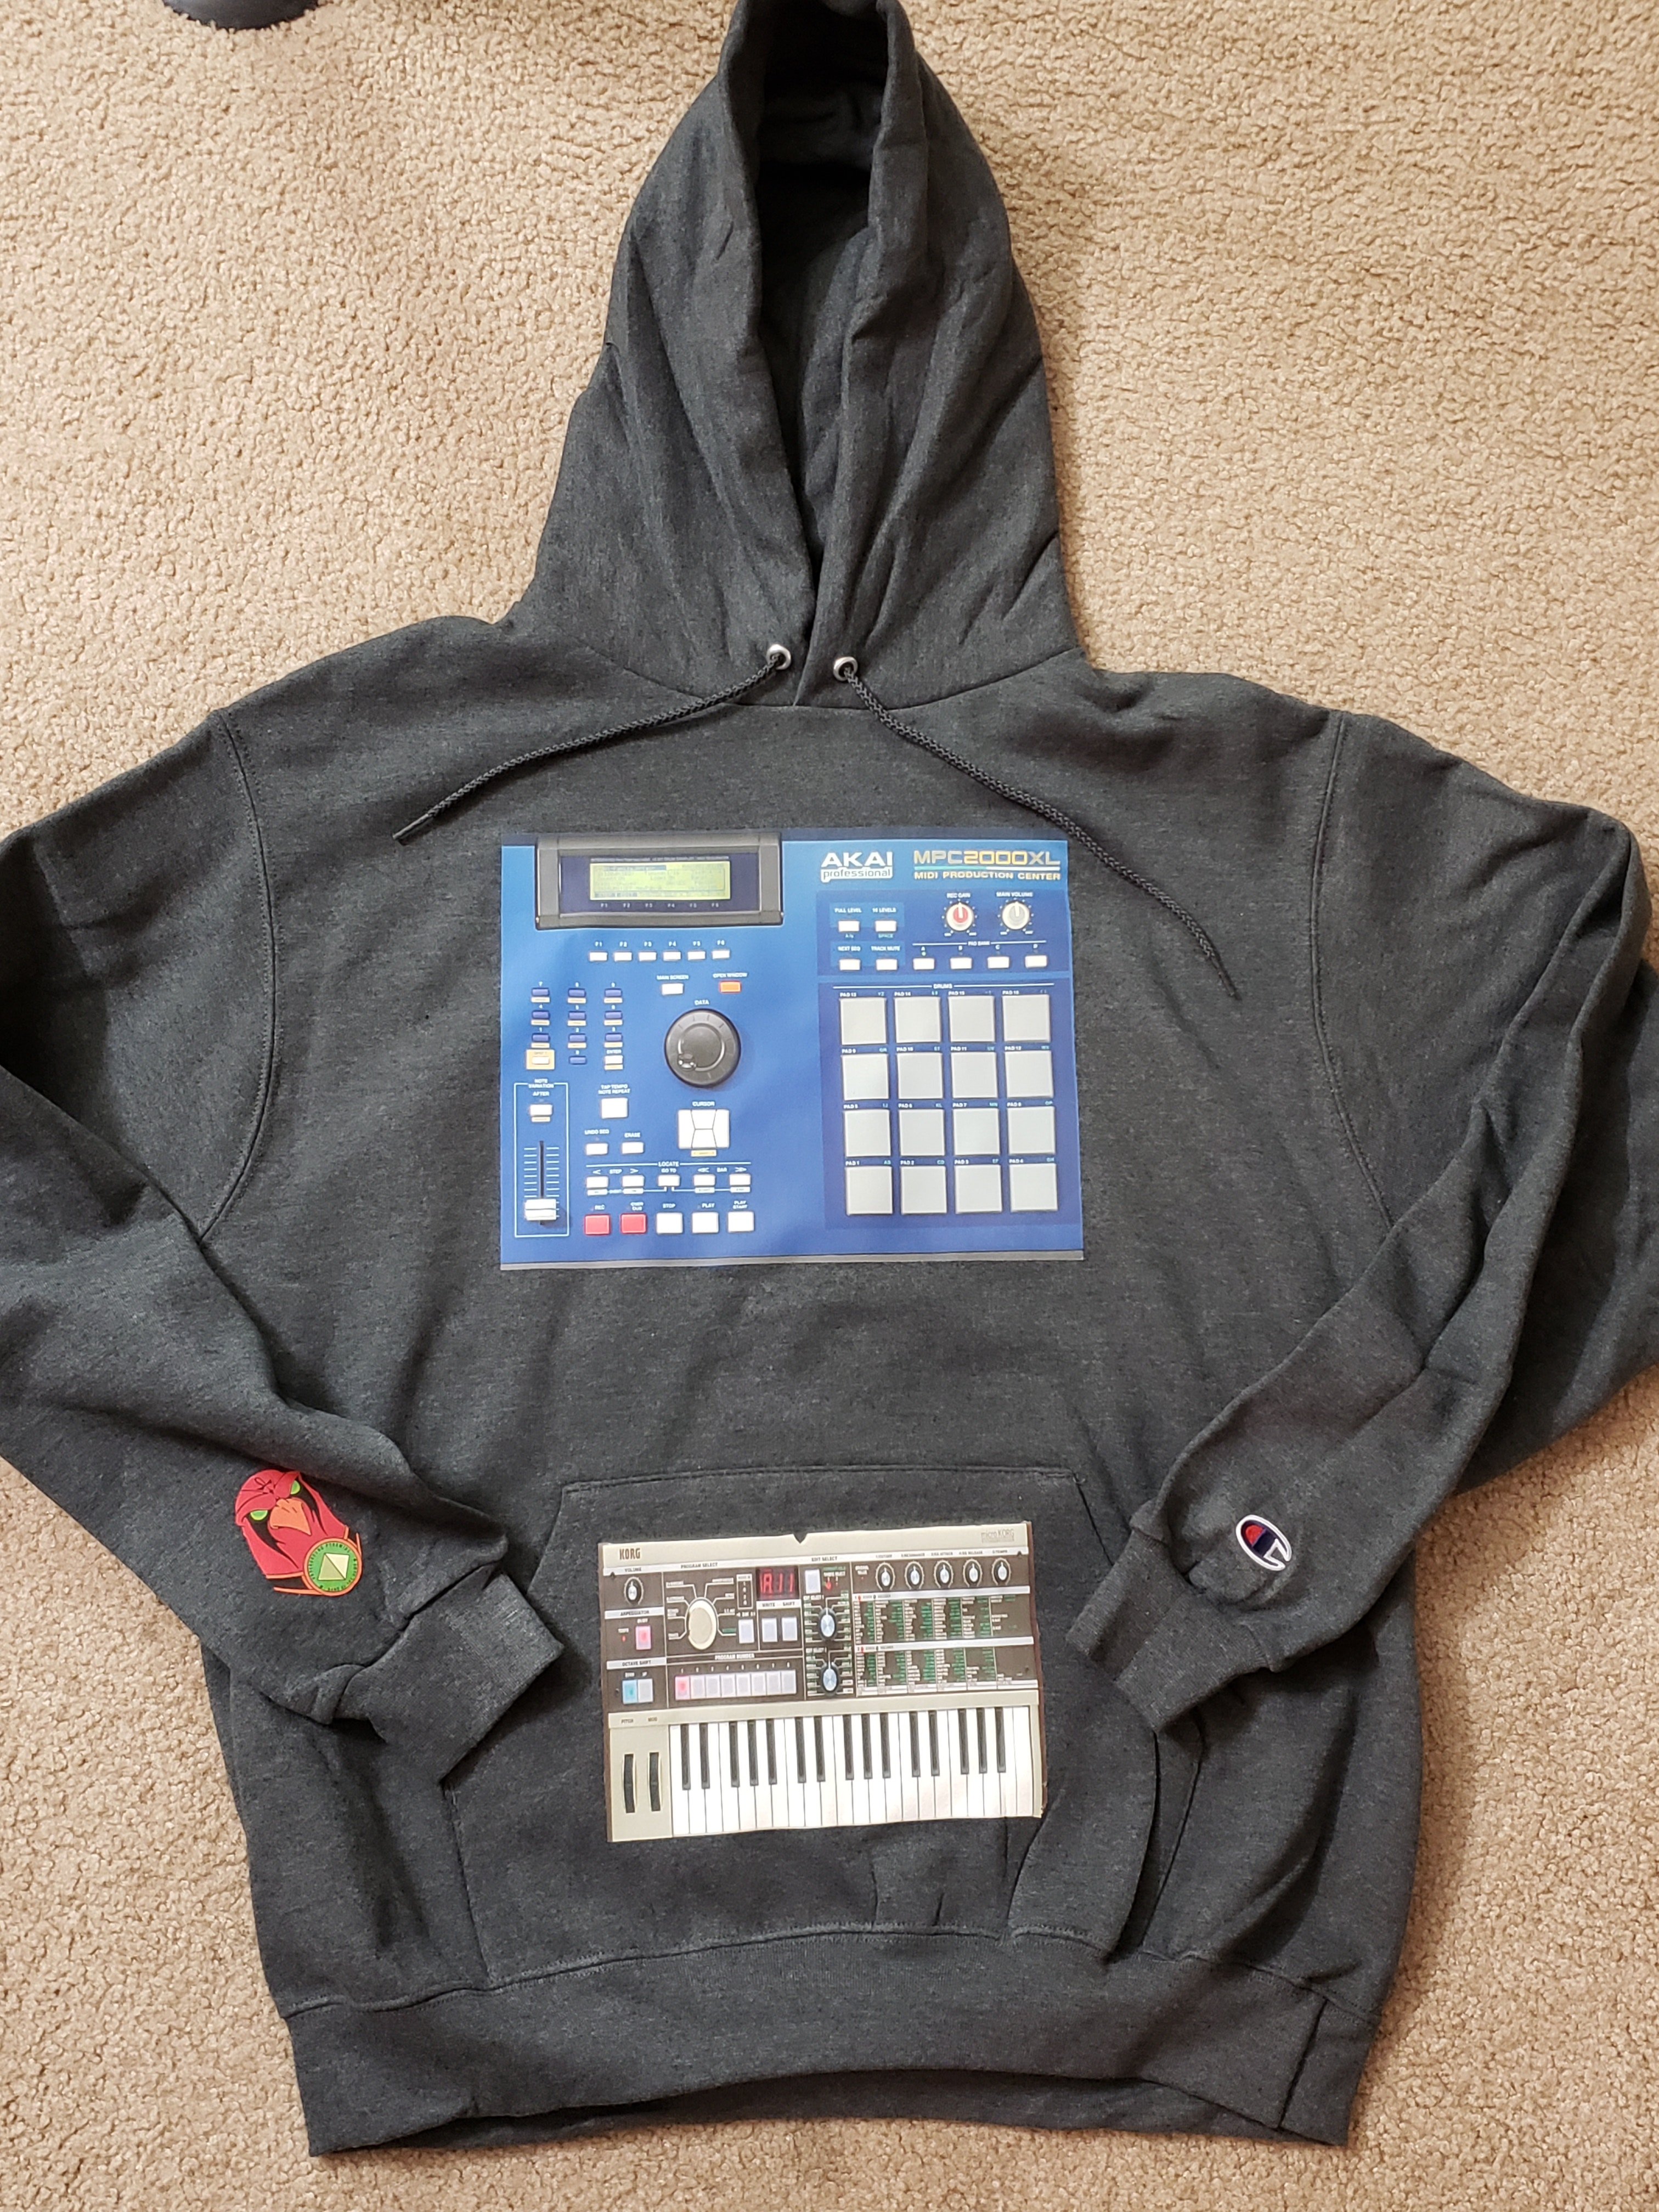 Champion S700 customer review by Evan Savage Good brand for the upscale brand merch